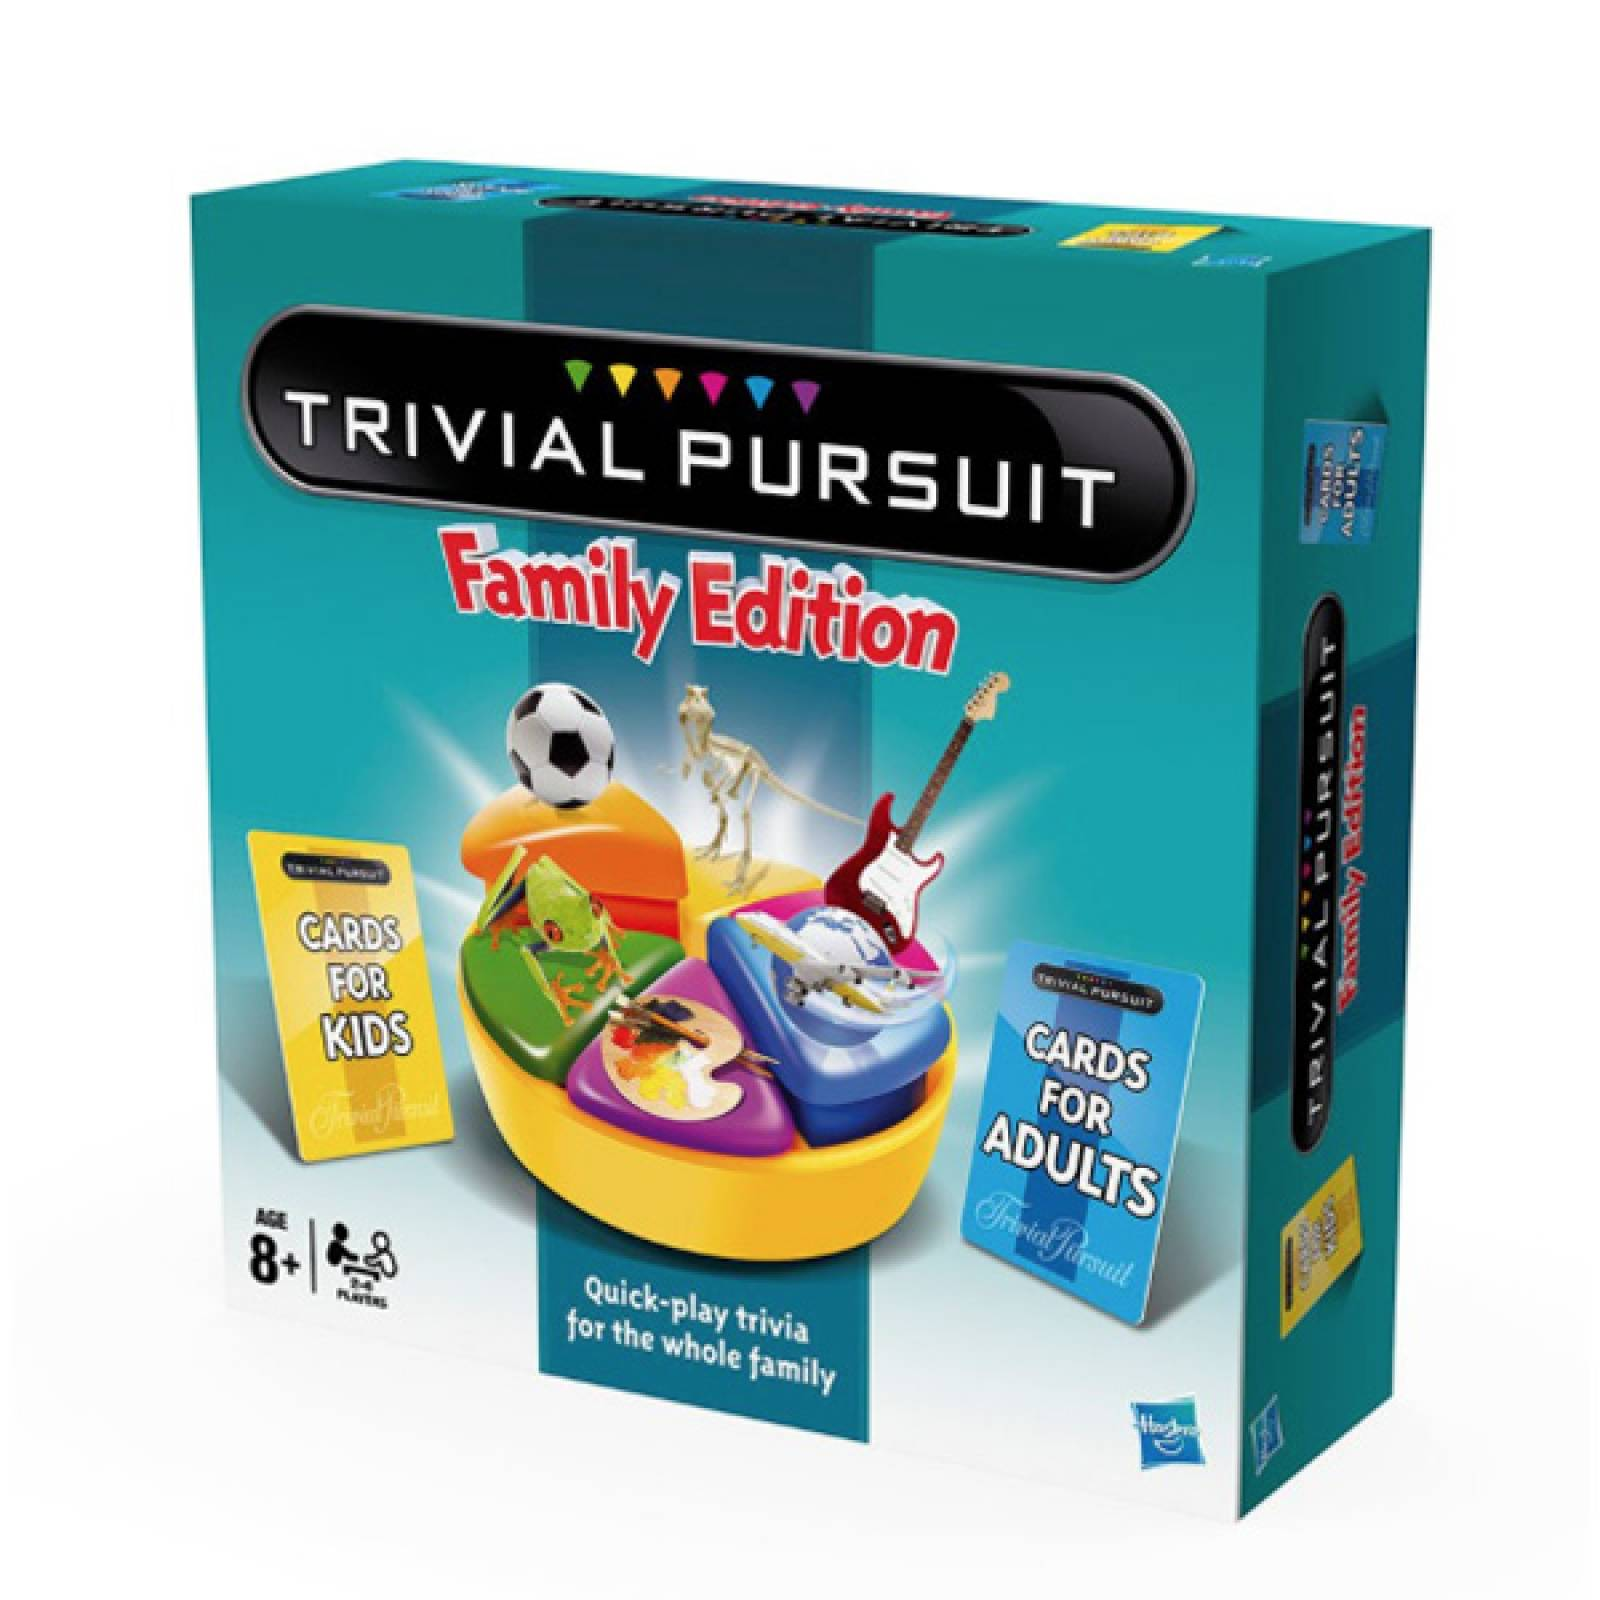 Trivial Pursuit Family Edition Classic Game 8+